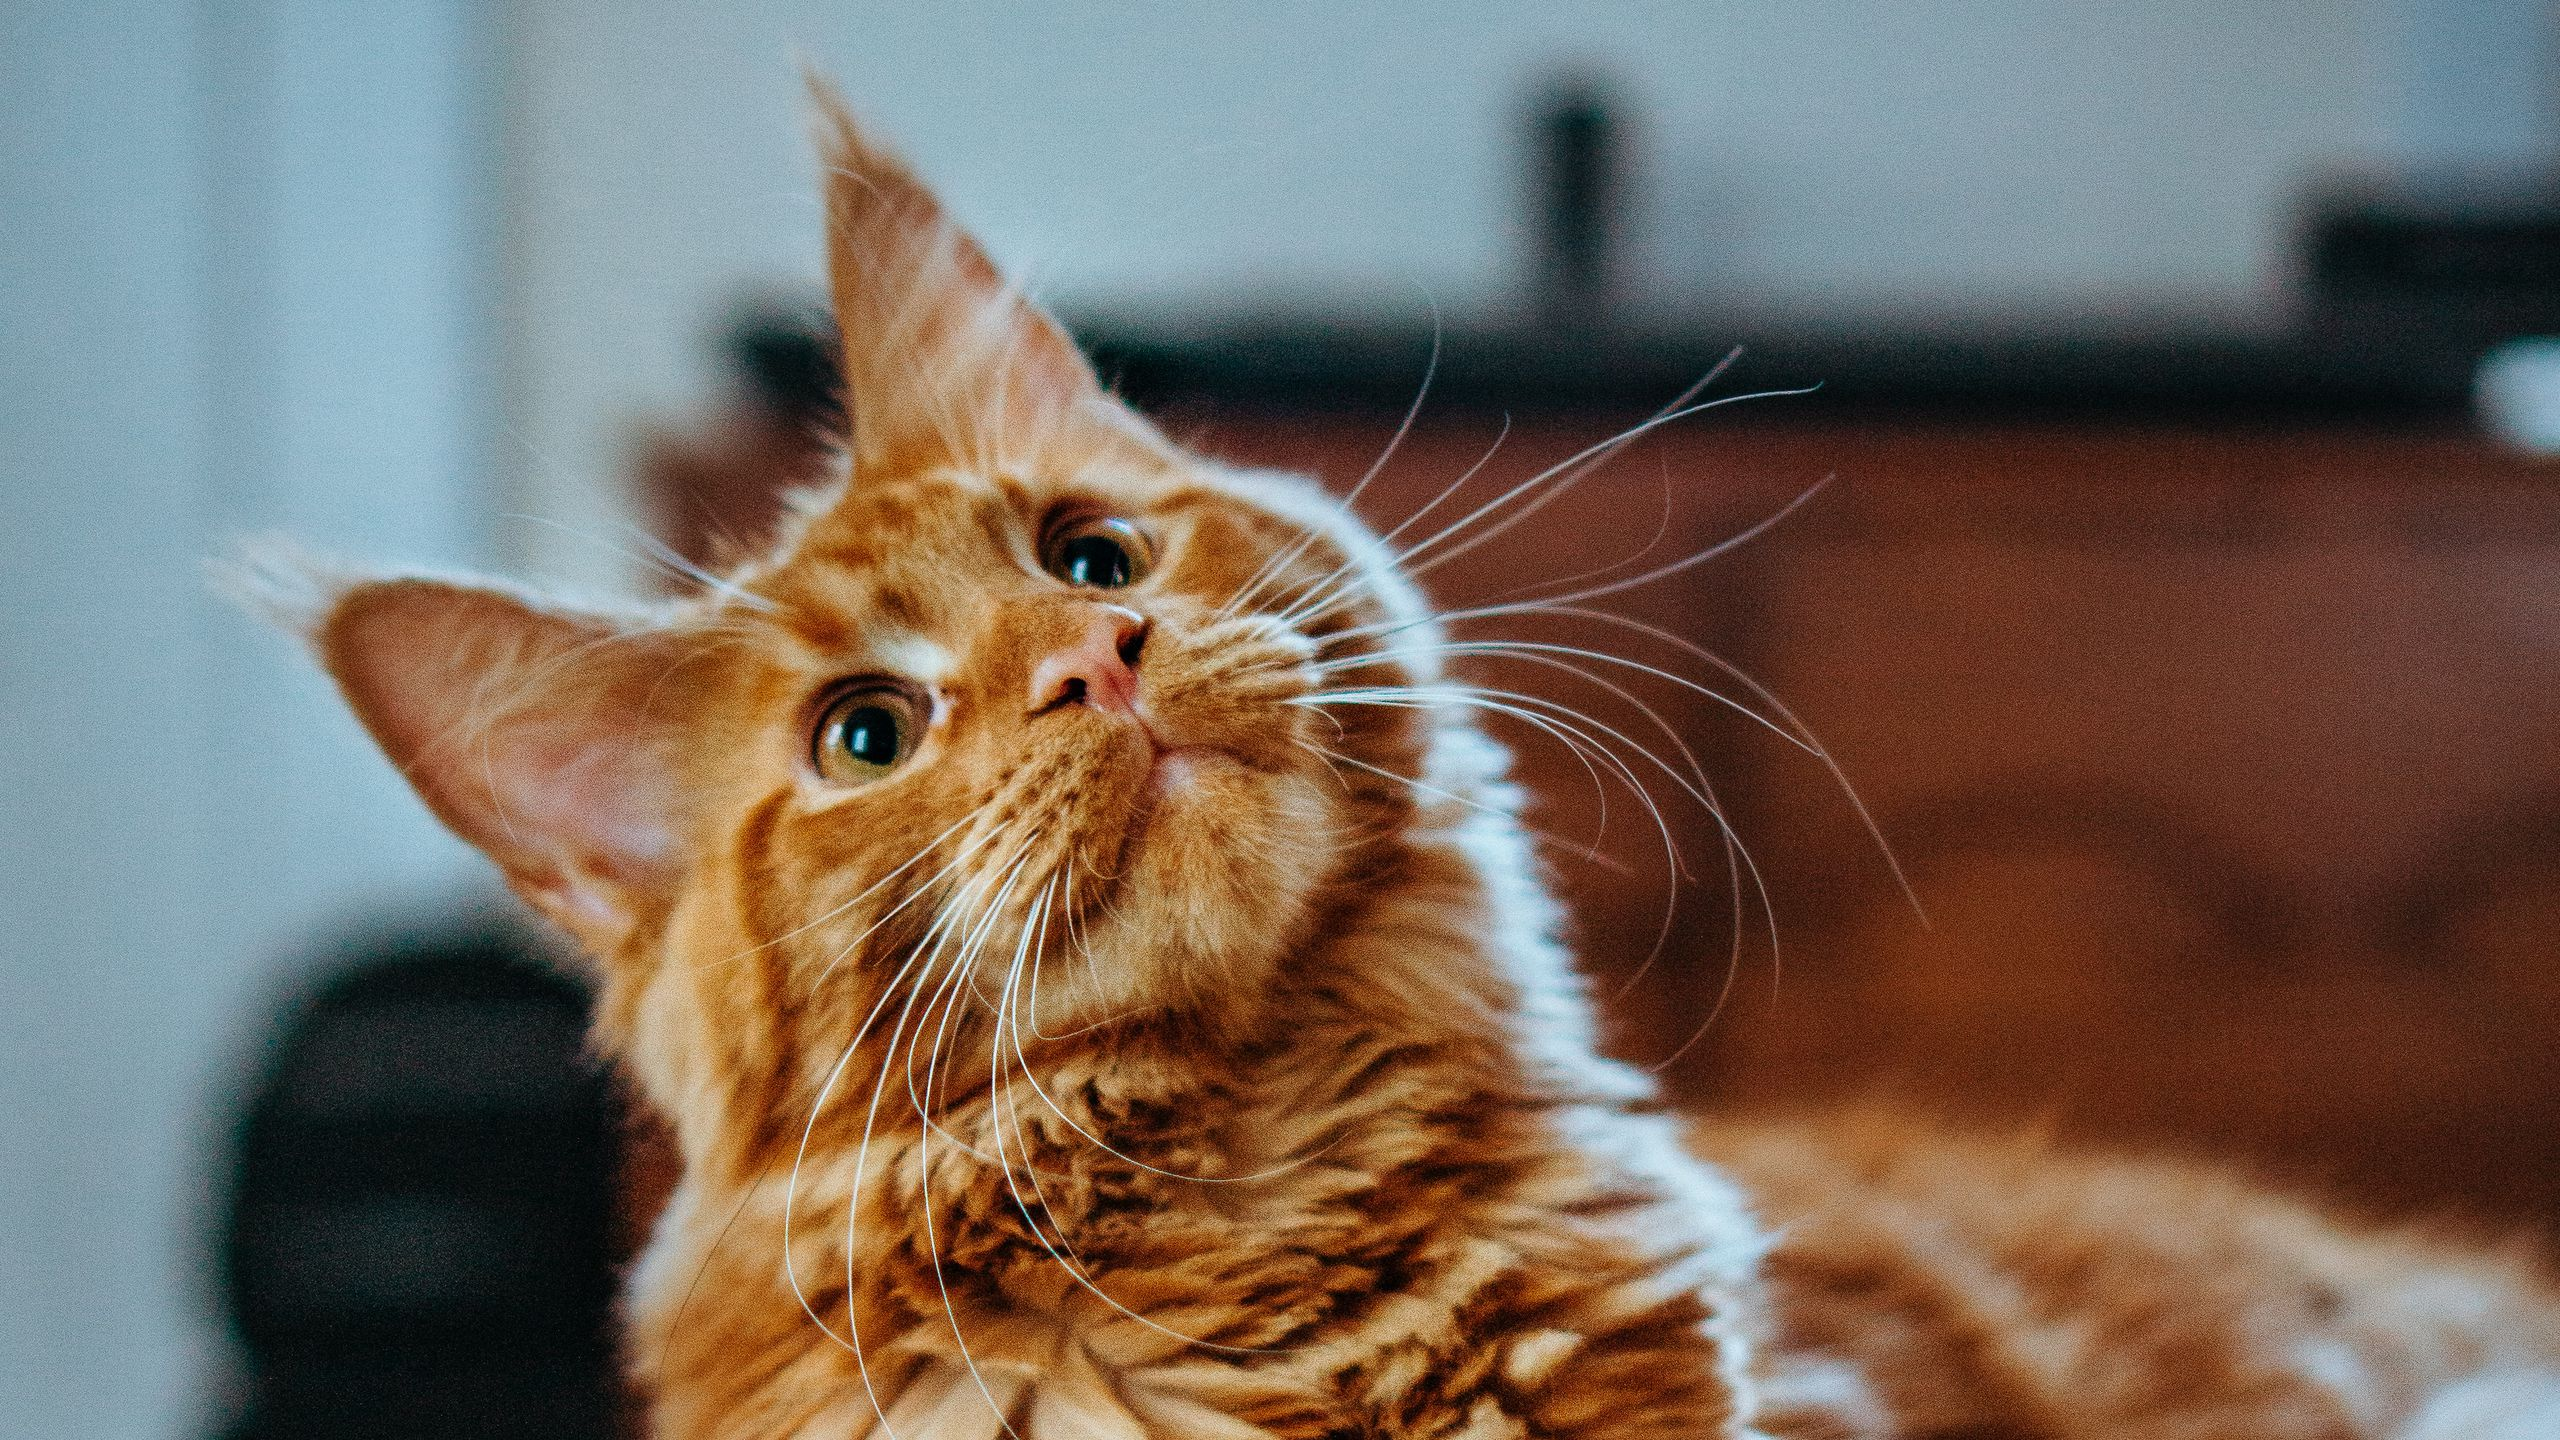 When Will Your Maine Coon Get Fluffy?